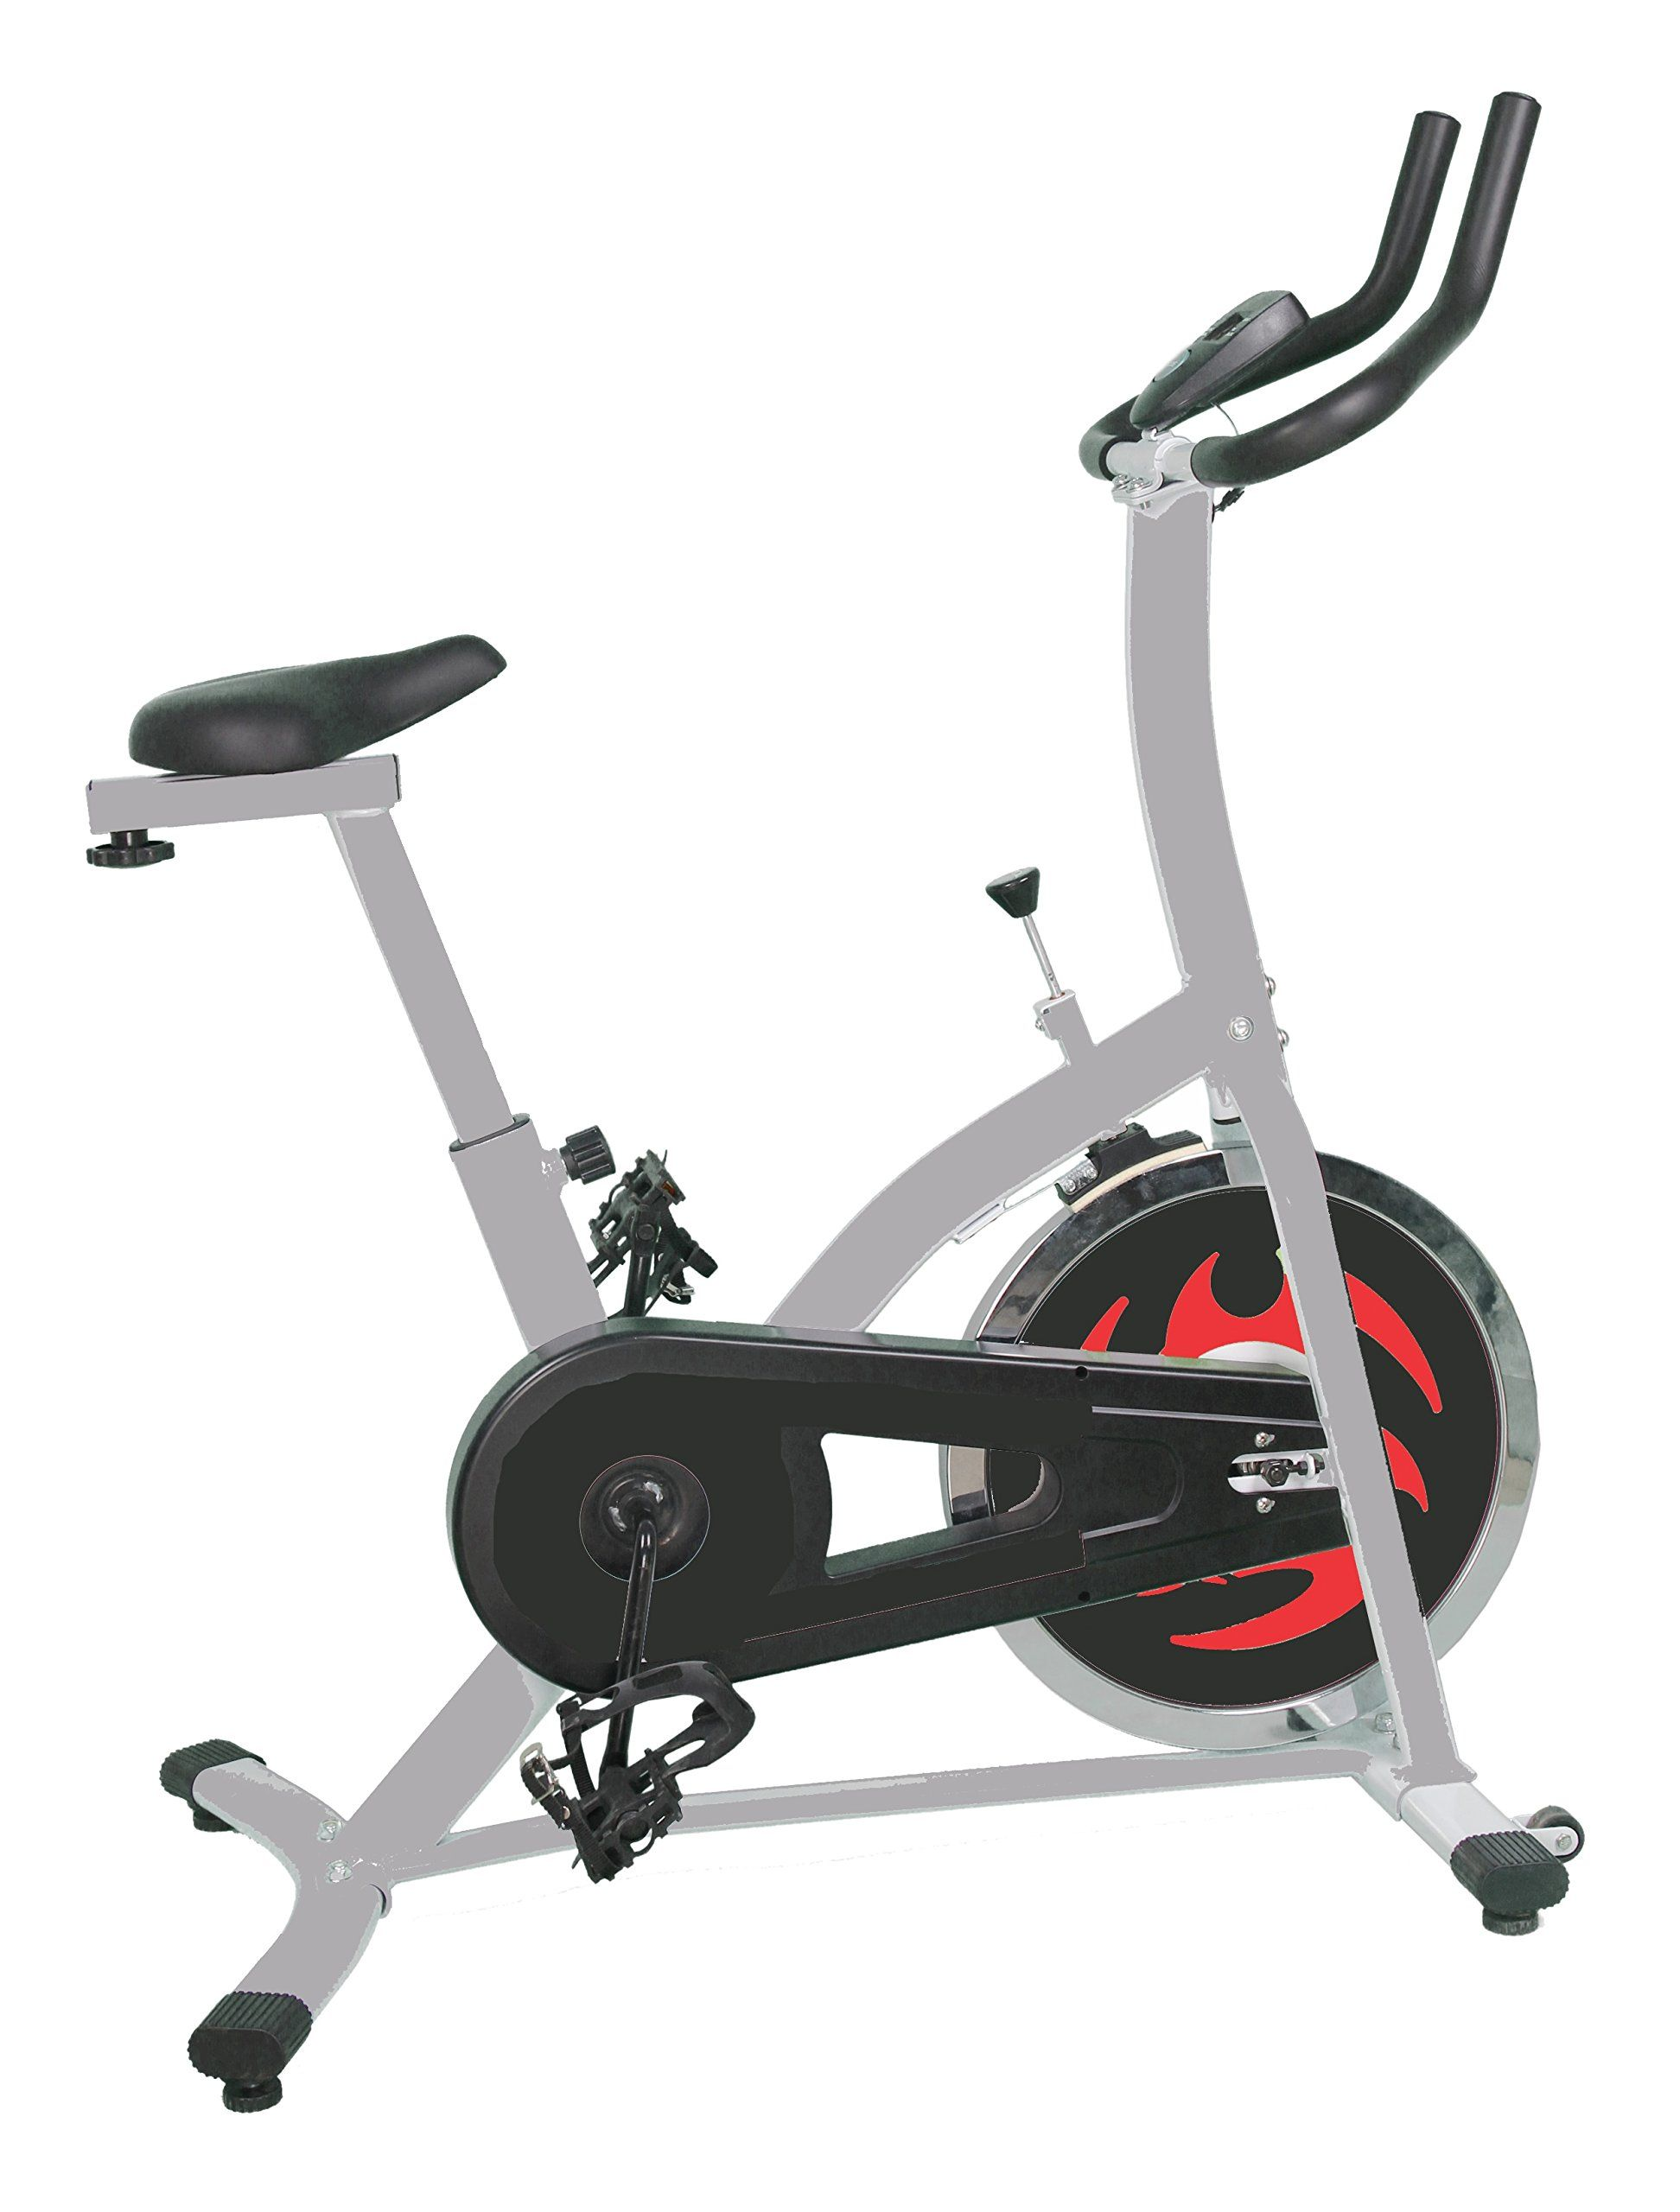 US Pride Furniture Gym of Fitness Cycle Upright Spinning Exercise Bike. 1-piece crank, chain drive and weighted flywheel. Single Window LCD monitor: Easy to read speed, distance, time, calories, pulse,odometer. Easy handle bar/seat adjustment and lock while in sitting position. Friction braking system and emergency lock. Materials: Steel, vinyl, plastic.